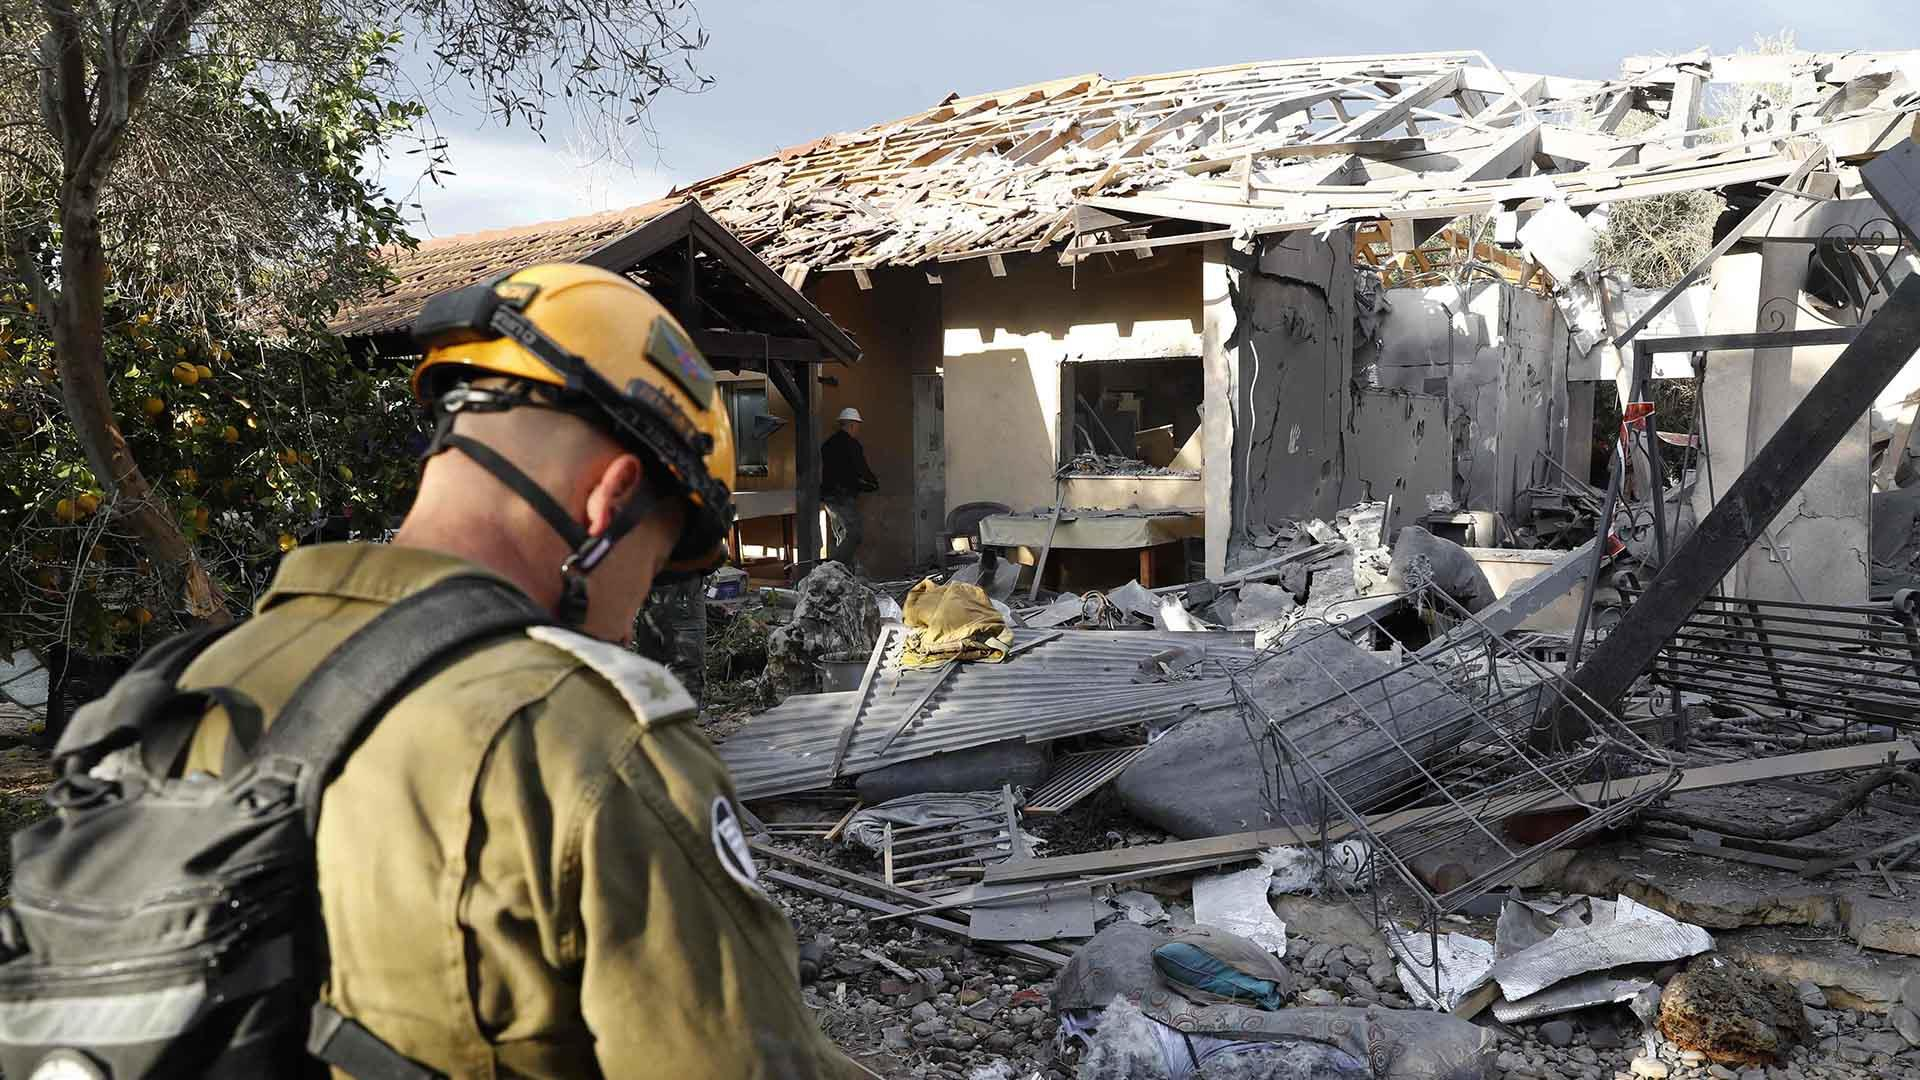 Israel military mobilizes troops after Gaza rocket wounds 7